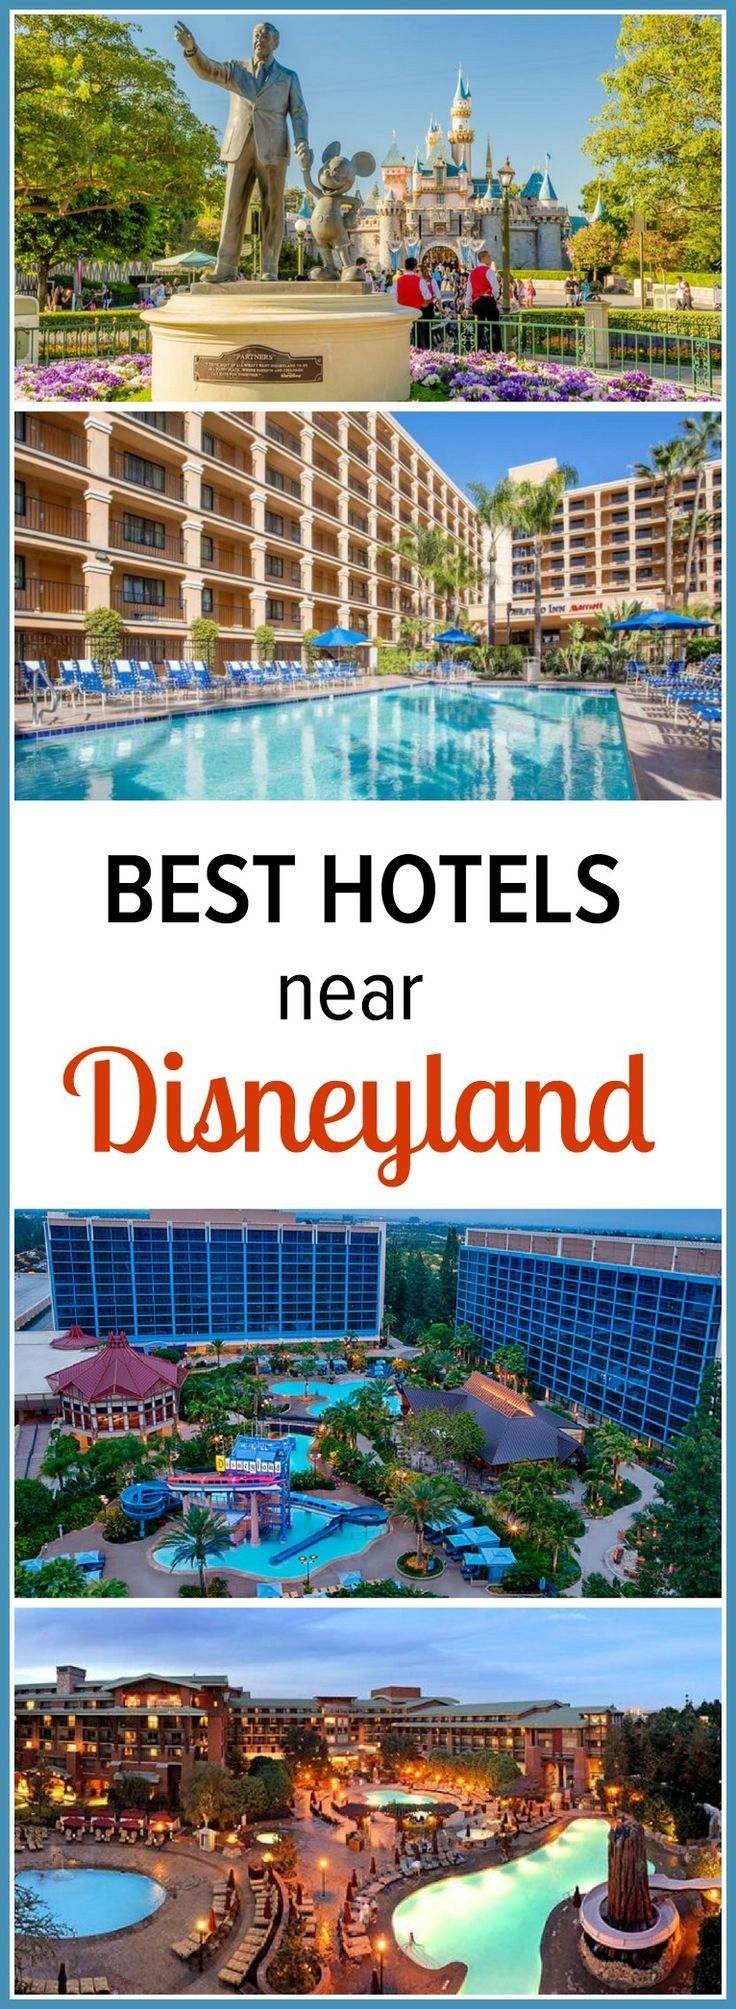 15 best hotels near Disneyland, California - from budget to luxury and Disney properties!